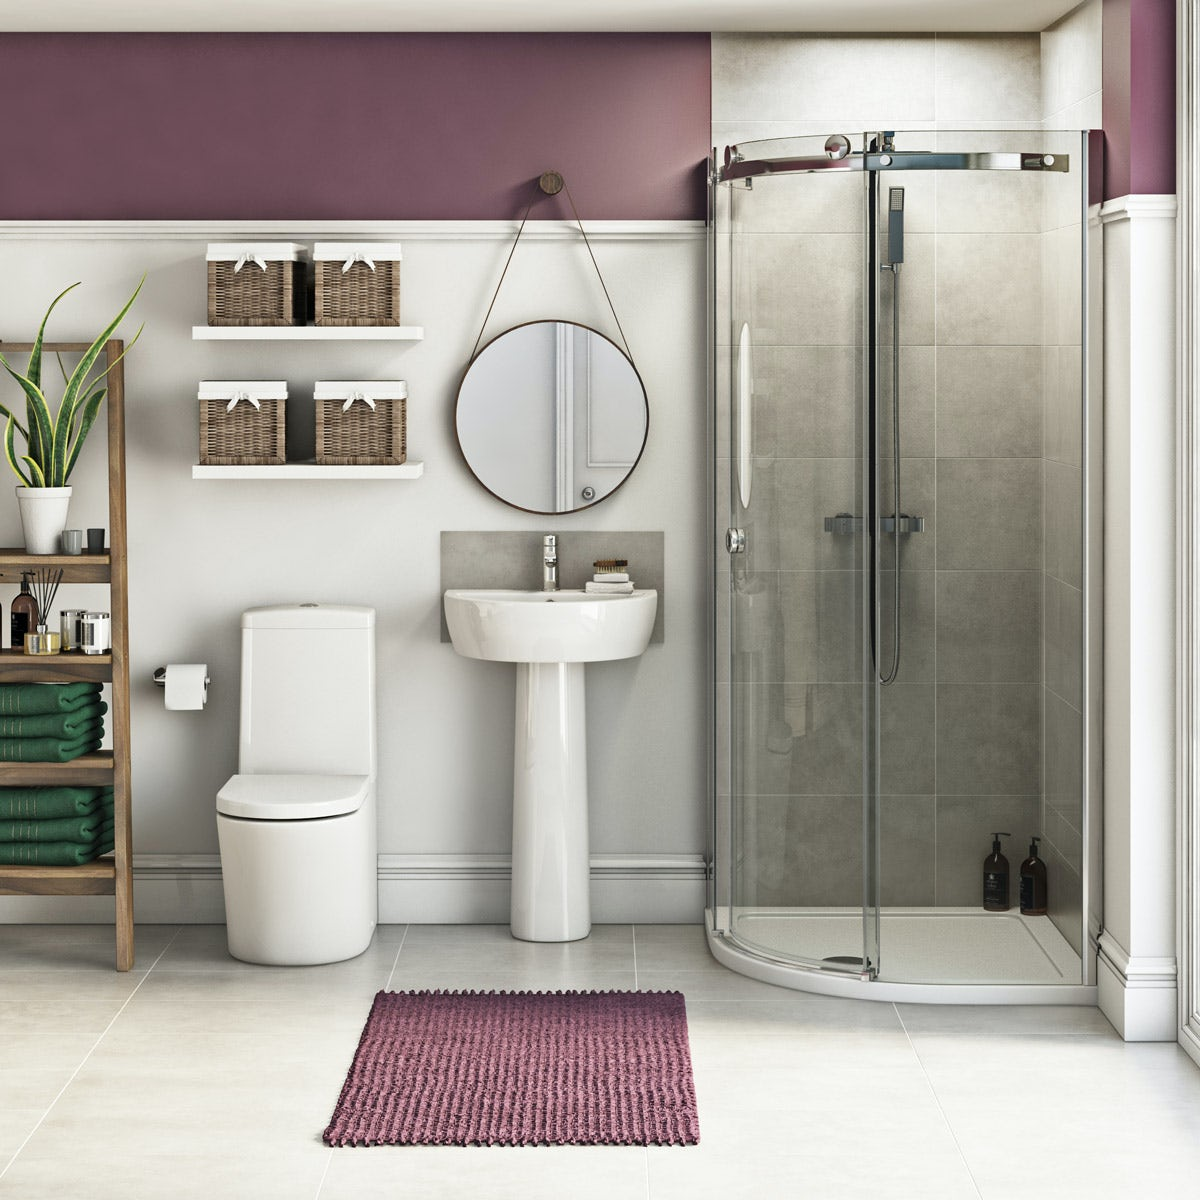 Mode Tate ensuite suite with quadrant enclosure and tray